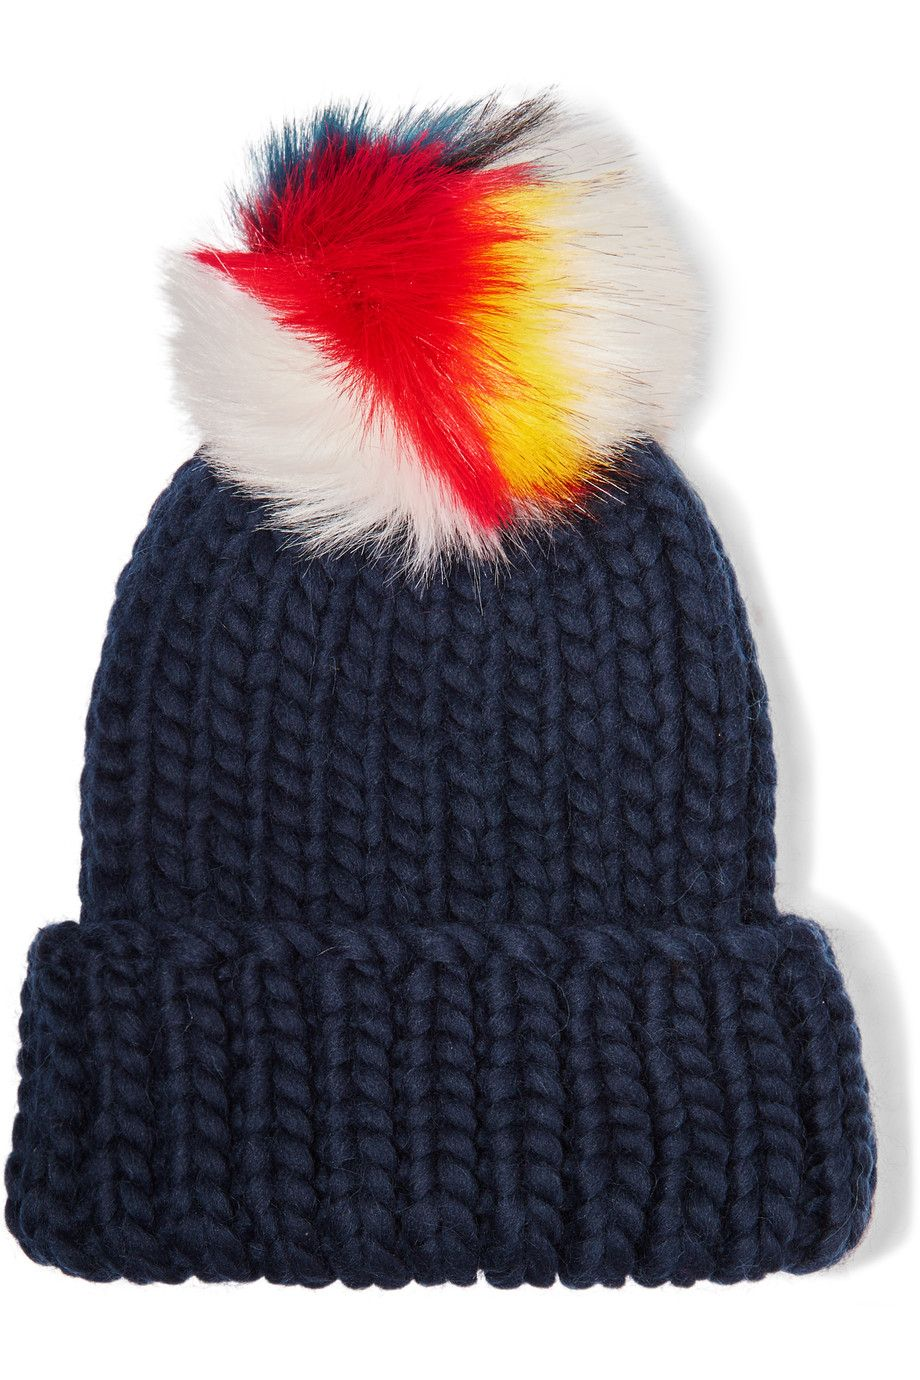 Navy wool, multicolored faux fur 100% wool; trim: 100% acrylic Spot clean